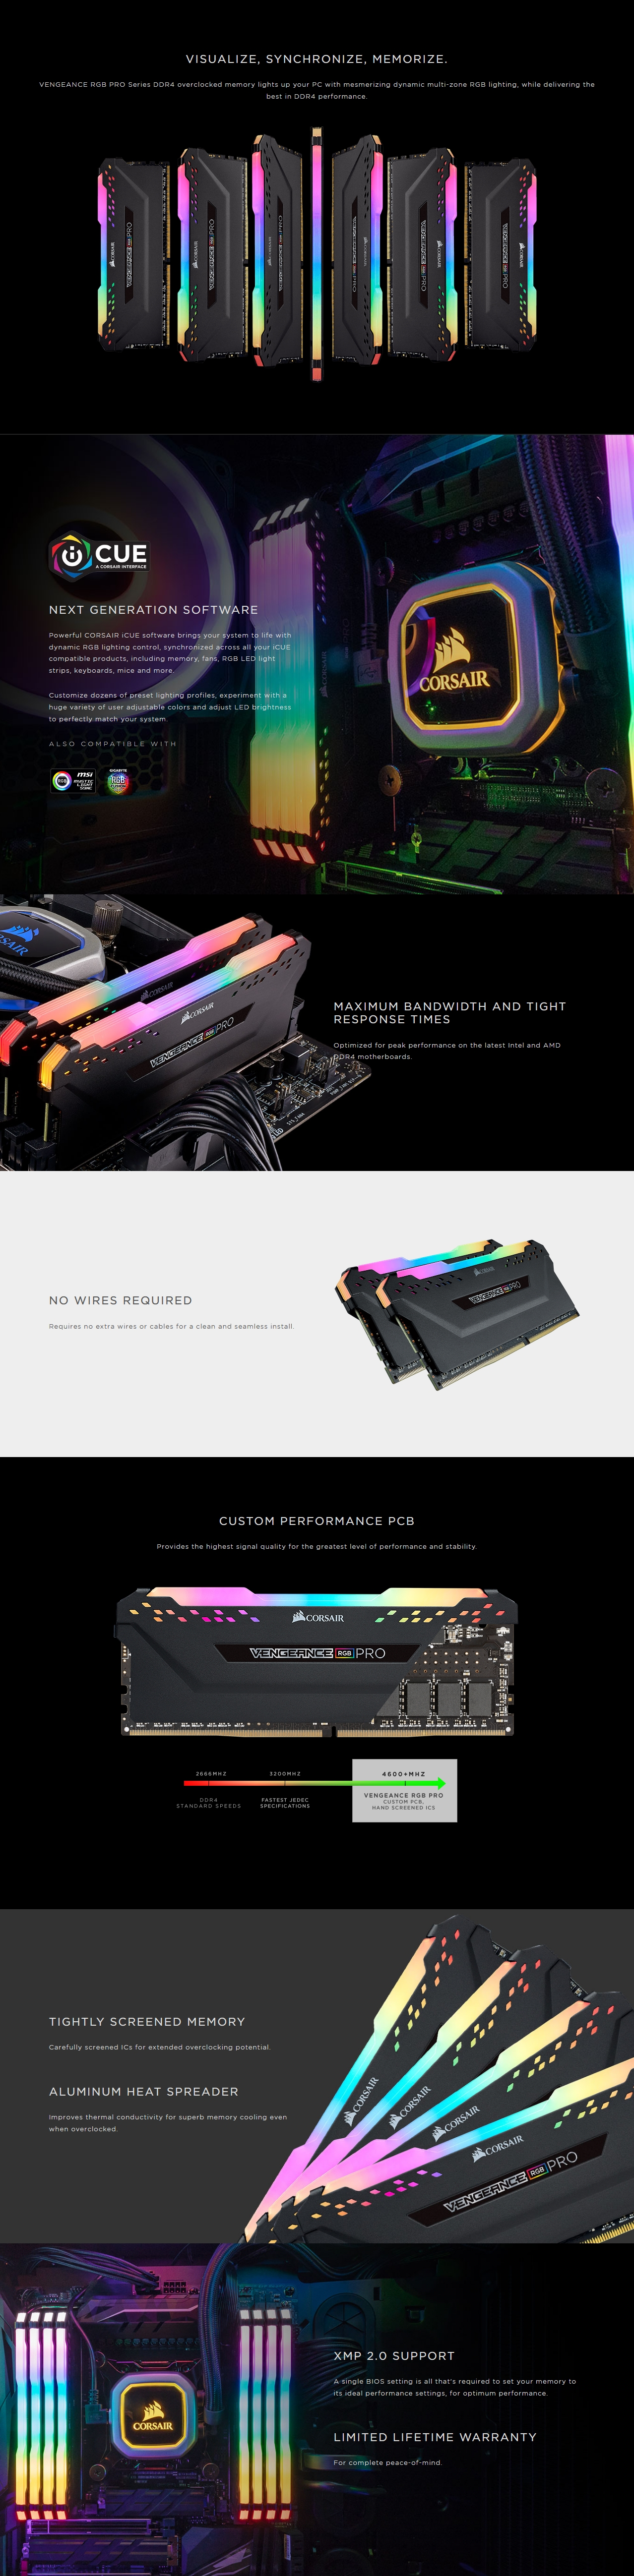 A large marketing image providing additional information about the product Corsair 16GB Kit (2x8GB) DDR4 Vengeance RGB PRO C16 3200Mhz - Additional alt info not provided